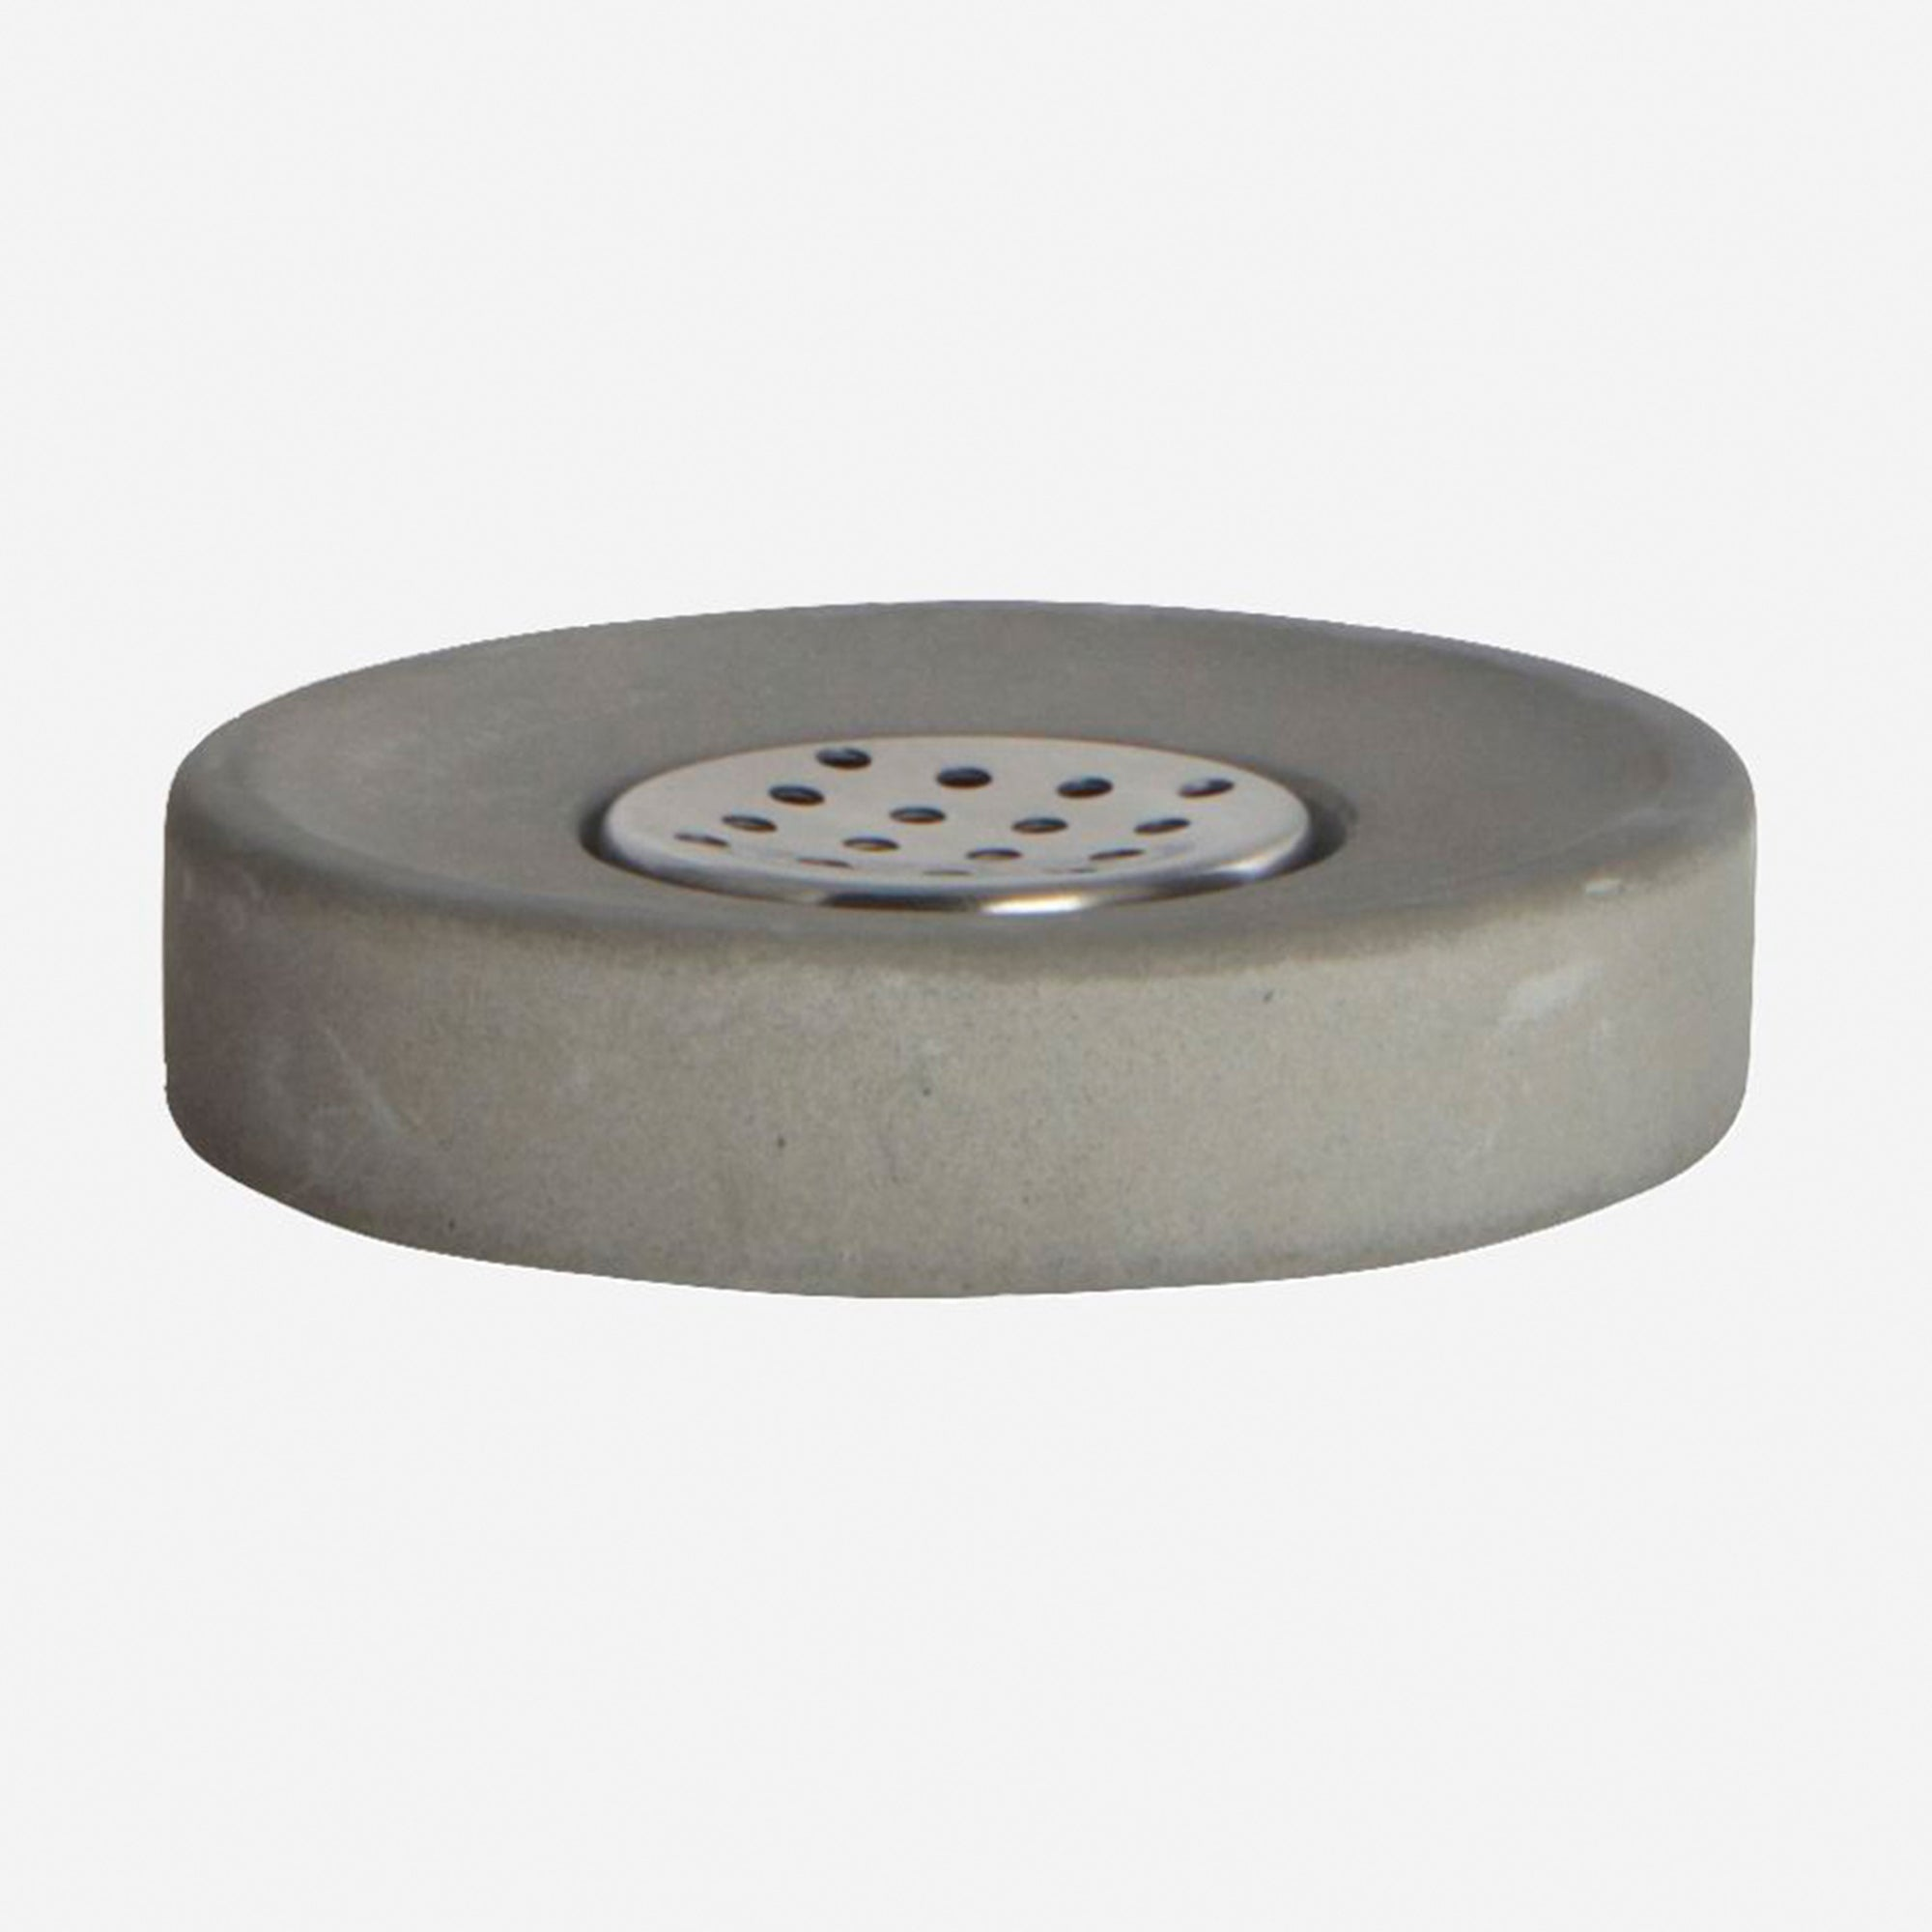 House Doctor Soap Dish Cement - Scandi Minimal